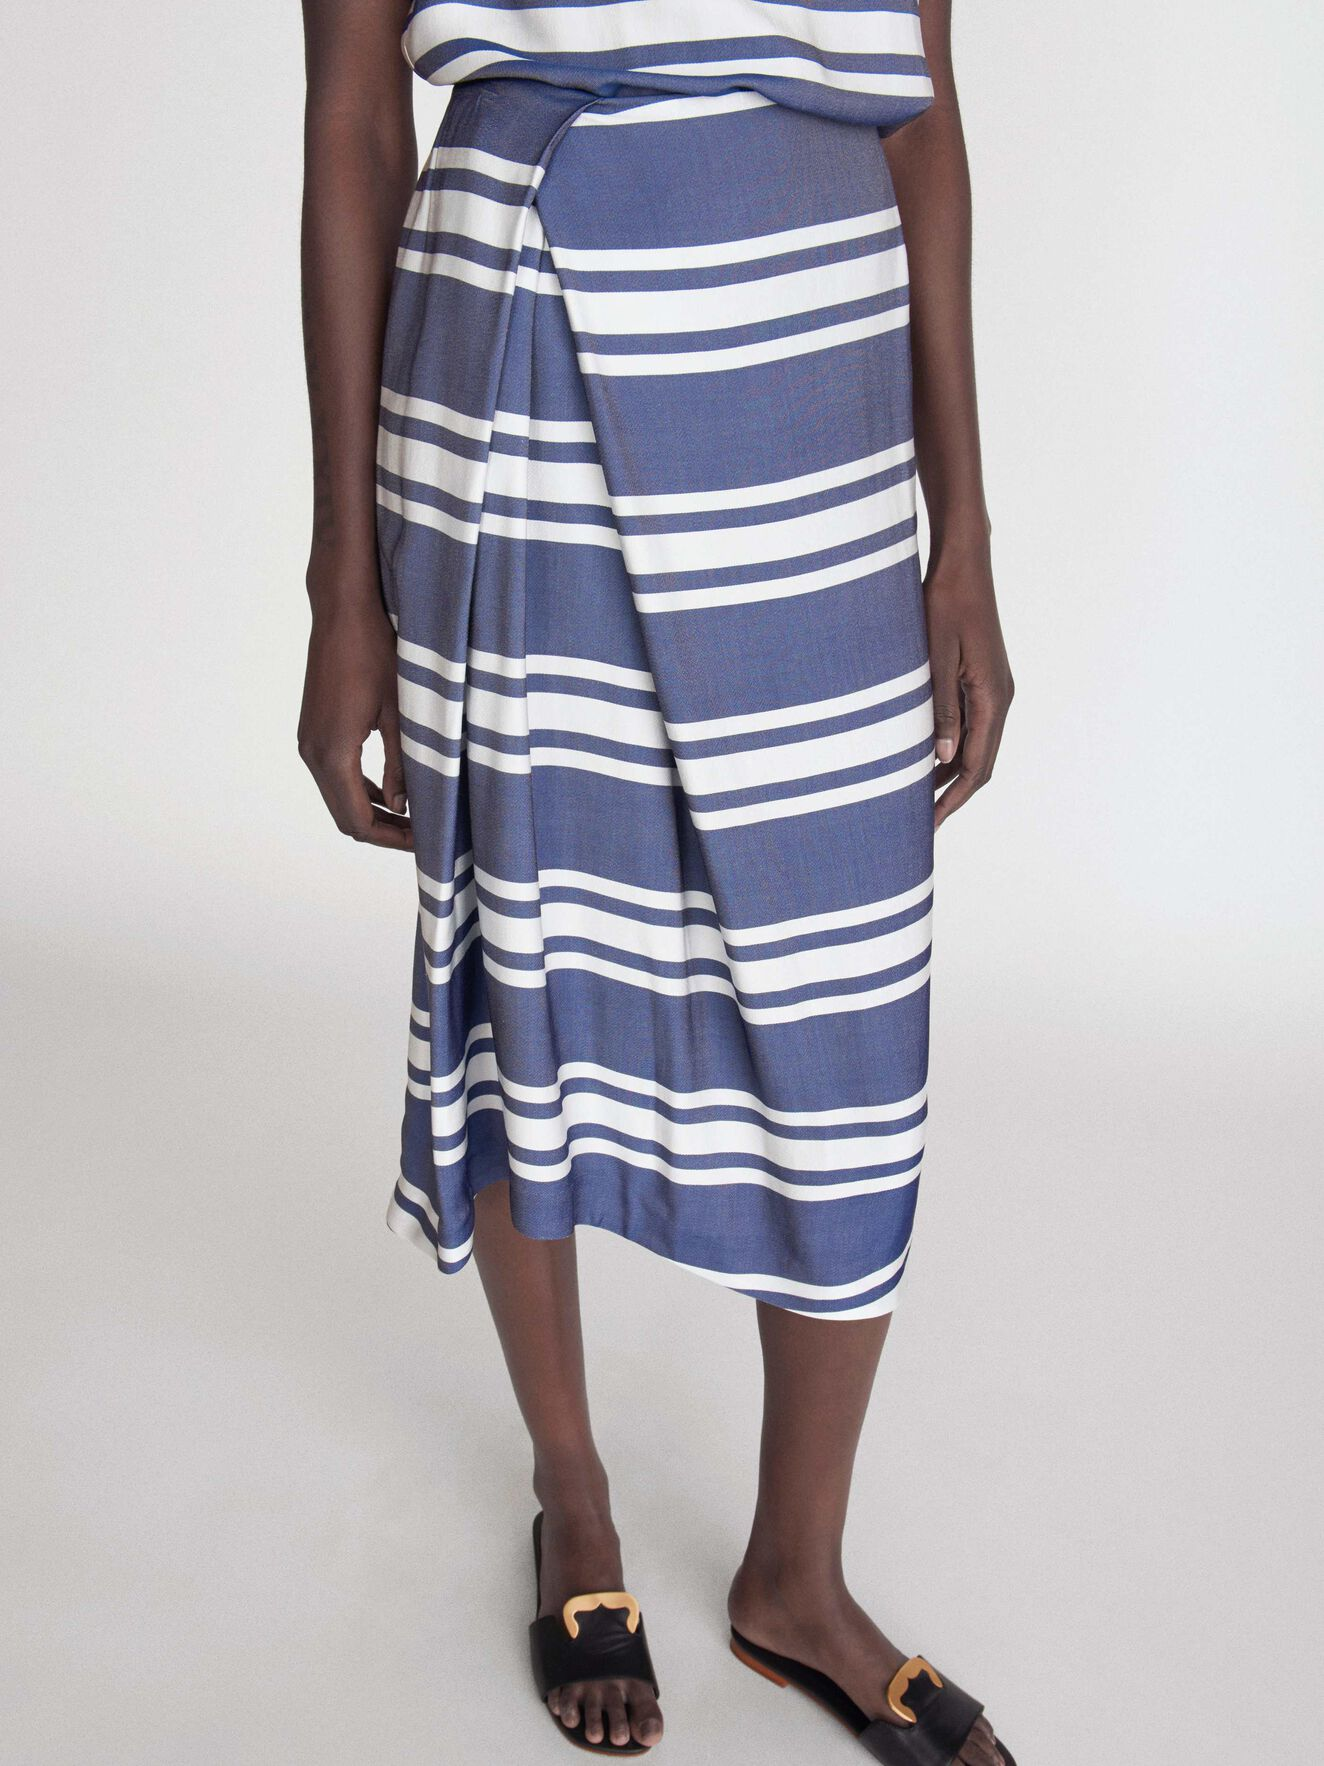 Fly S Skirt in Deep Ocean Blue from Tiger of Sweden